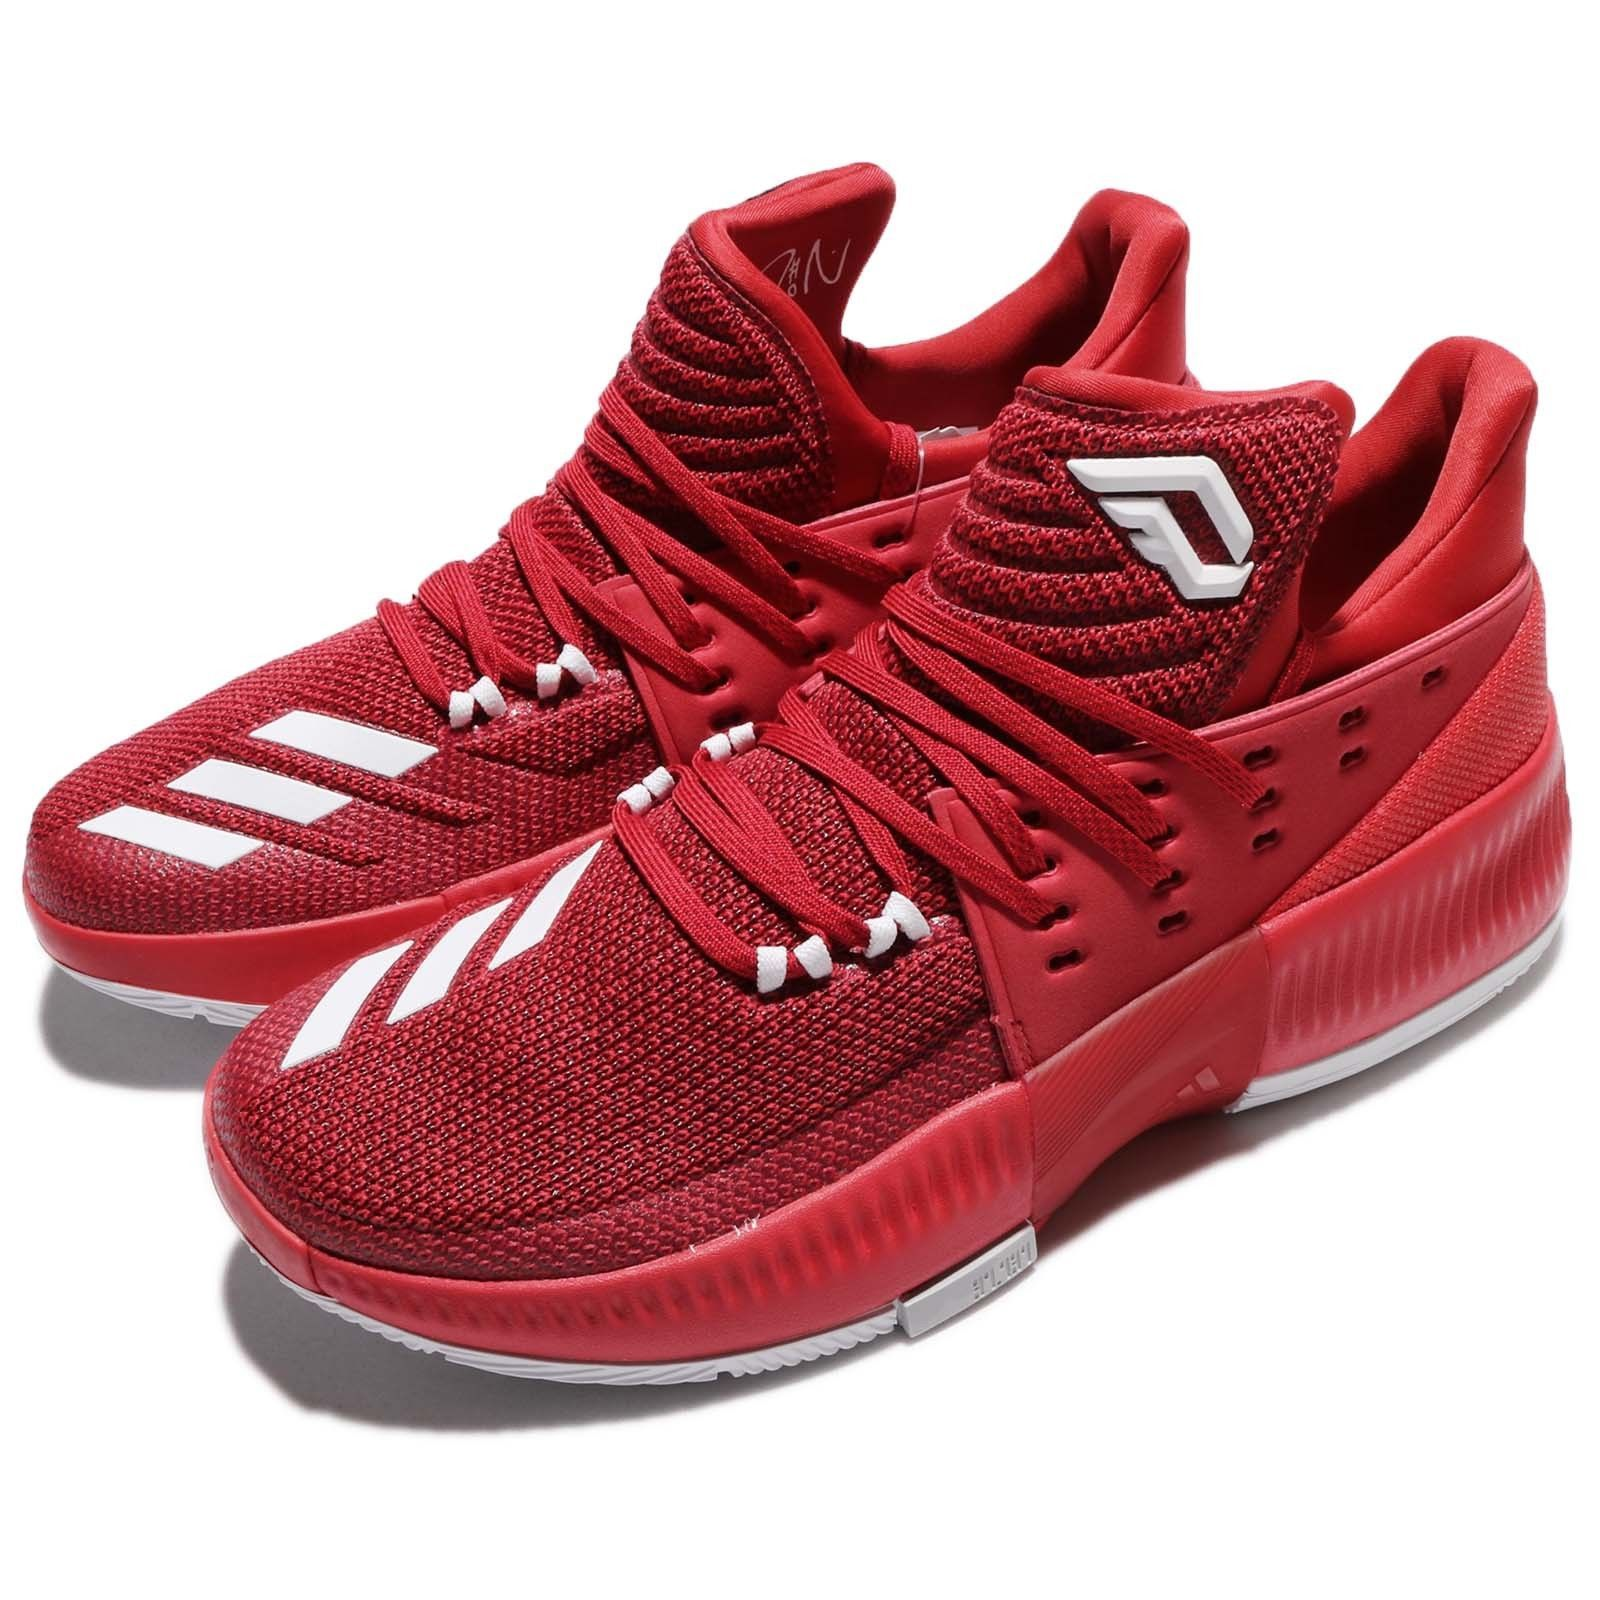 adidas Dame 3 Damian Lillard Power Red Men Basketball Shoes Sneakers BY3192